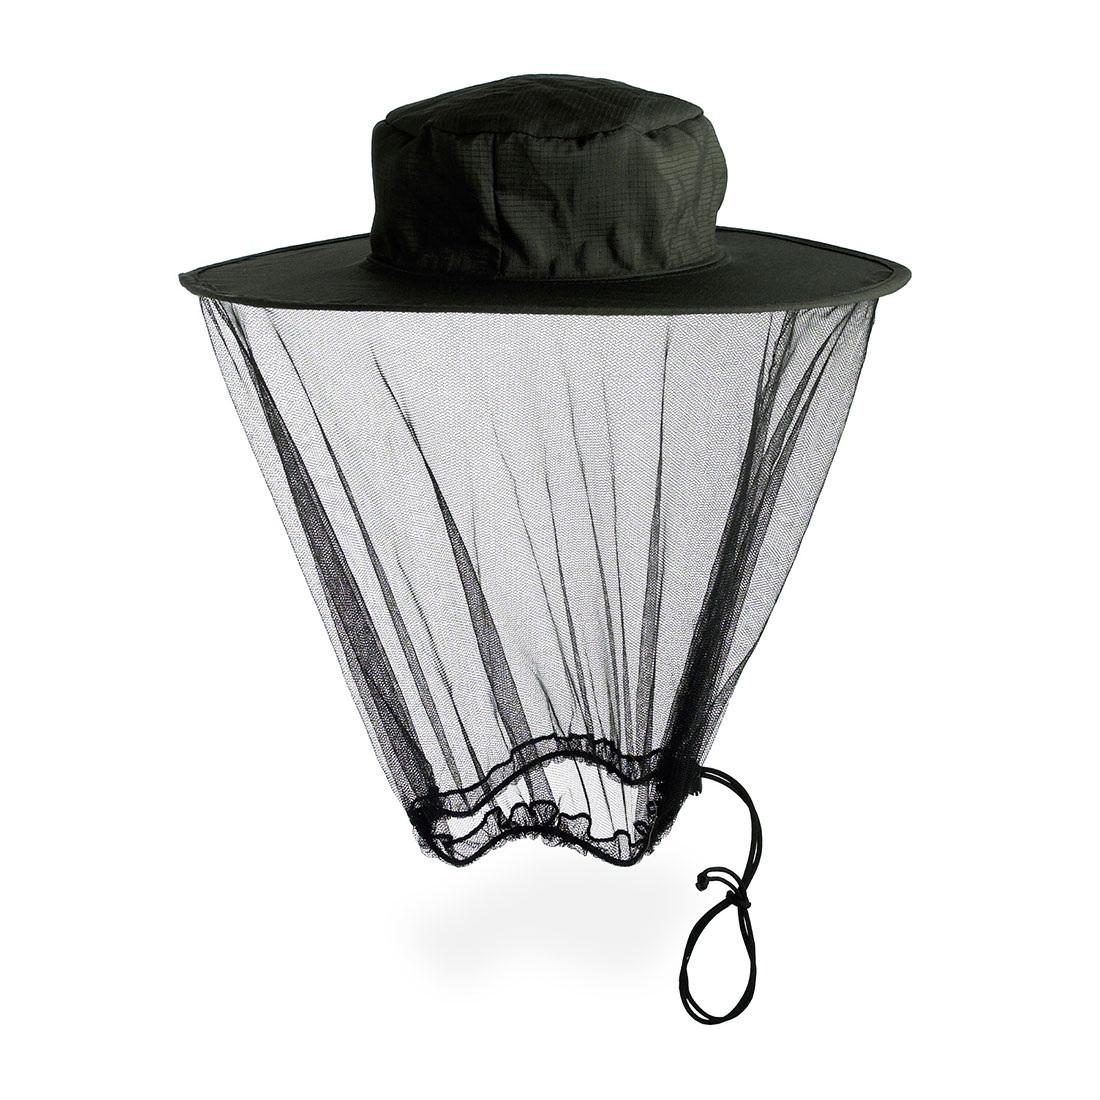 5065-pop-up-mosquito-and-midge-headnet-hat-1